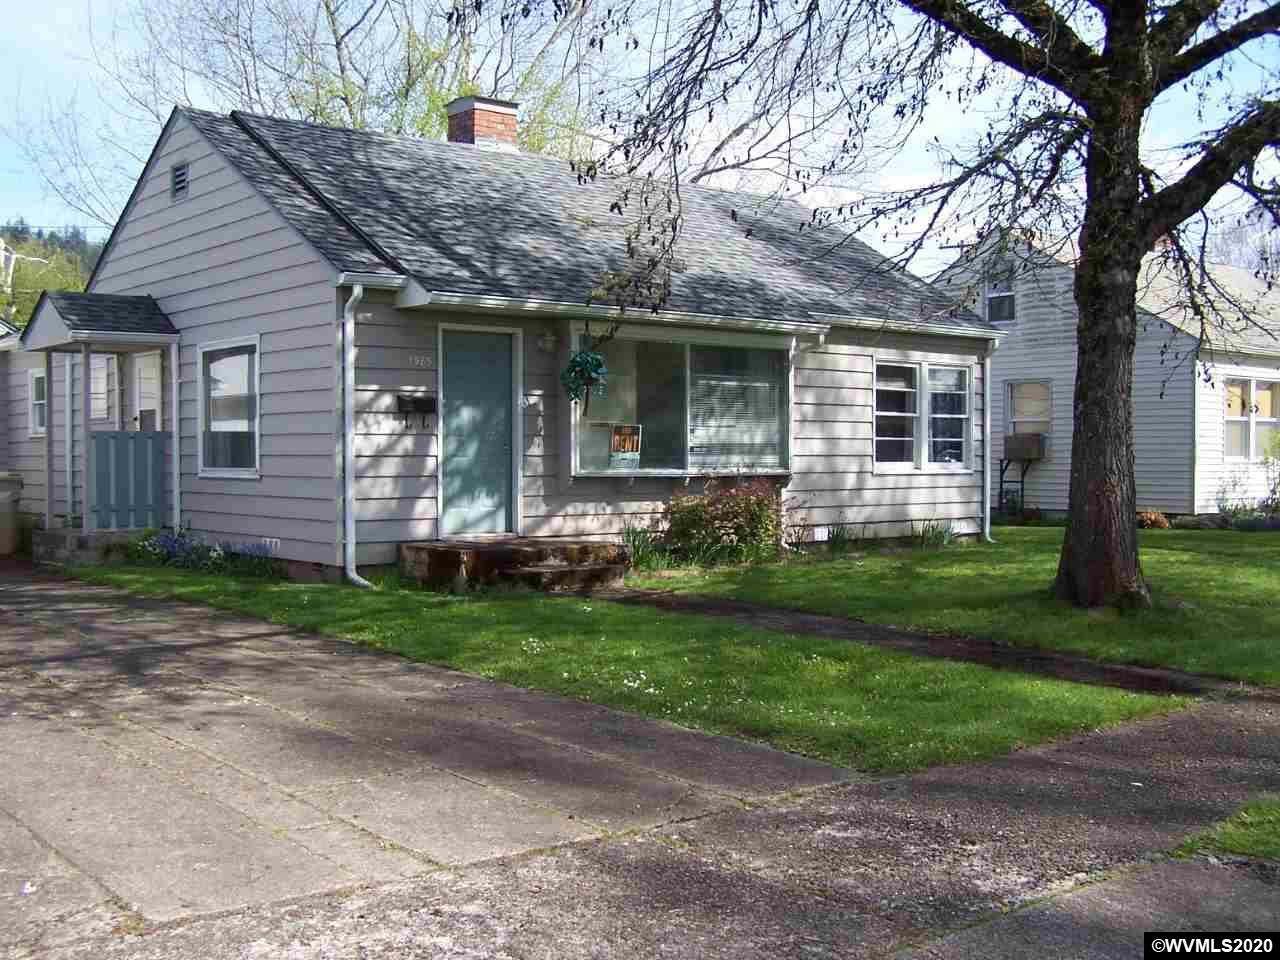 Perfect starter home for the first time buyer! Great investment or downsizing home. Situated on nice flat lot. Nice cottage style and charm with a wonderful layout, nice large rooms with open feeling. Charming with character, a great place to call your home.